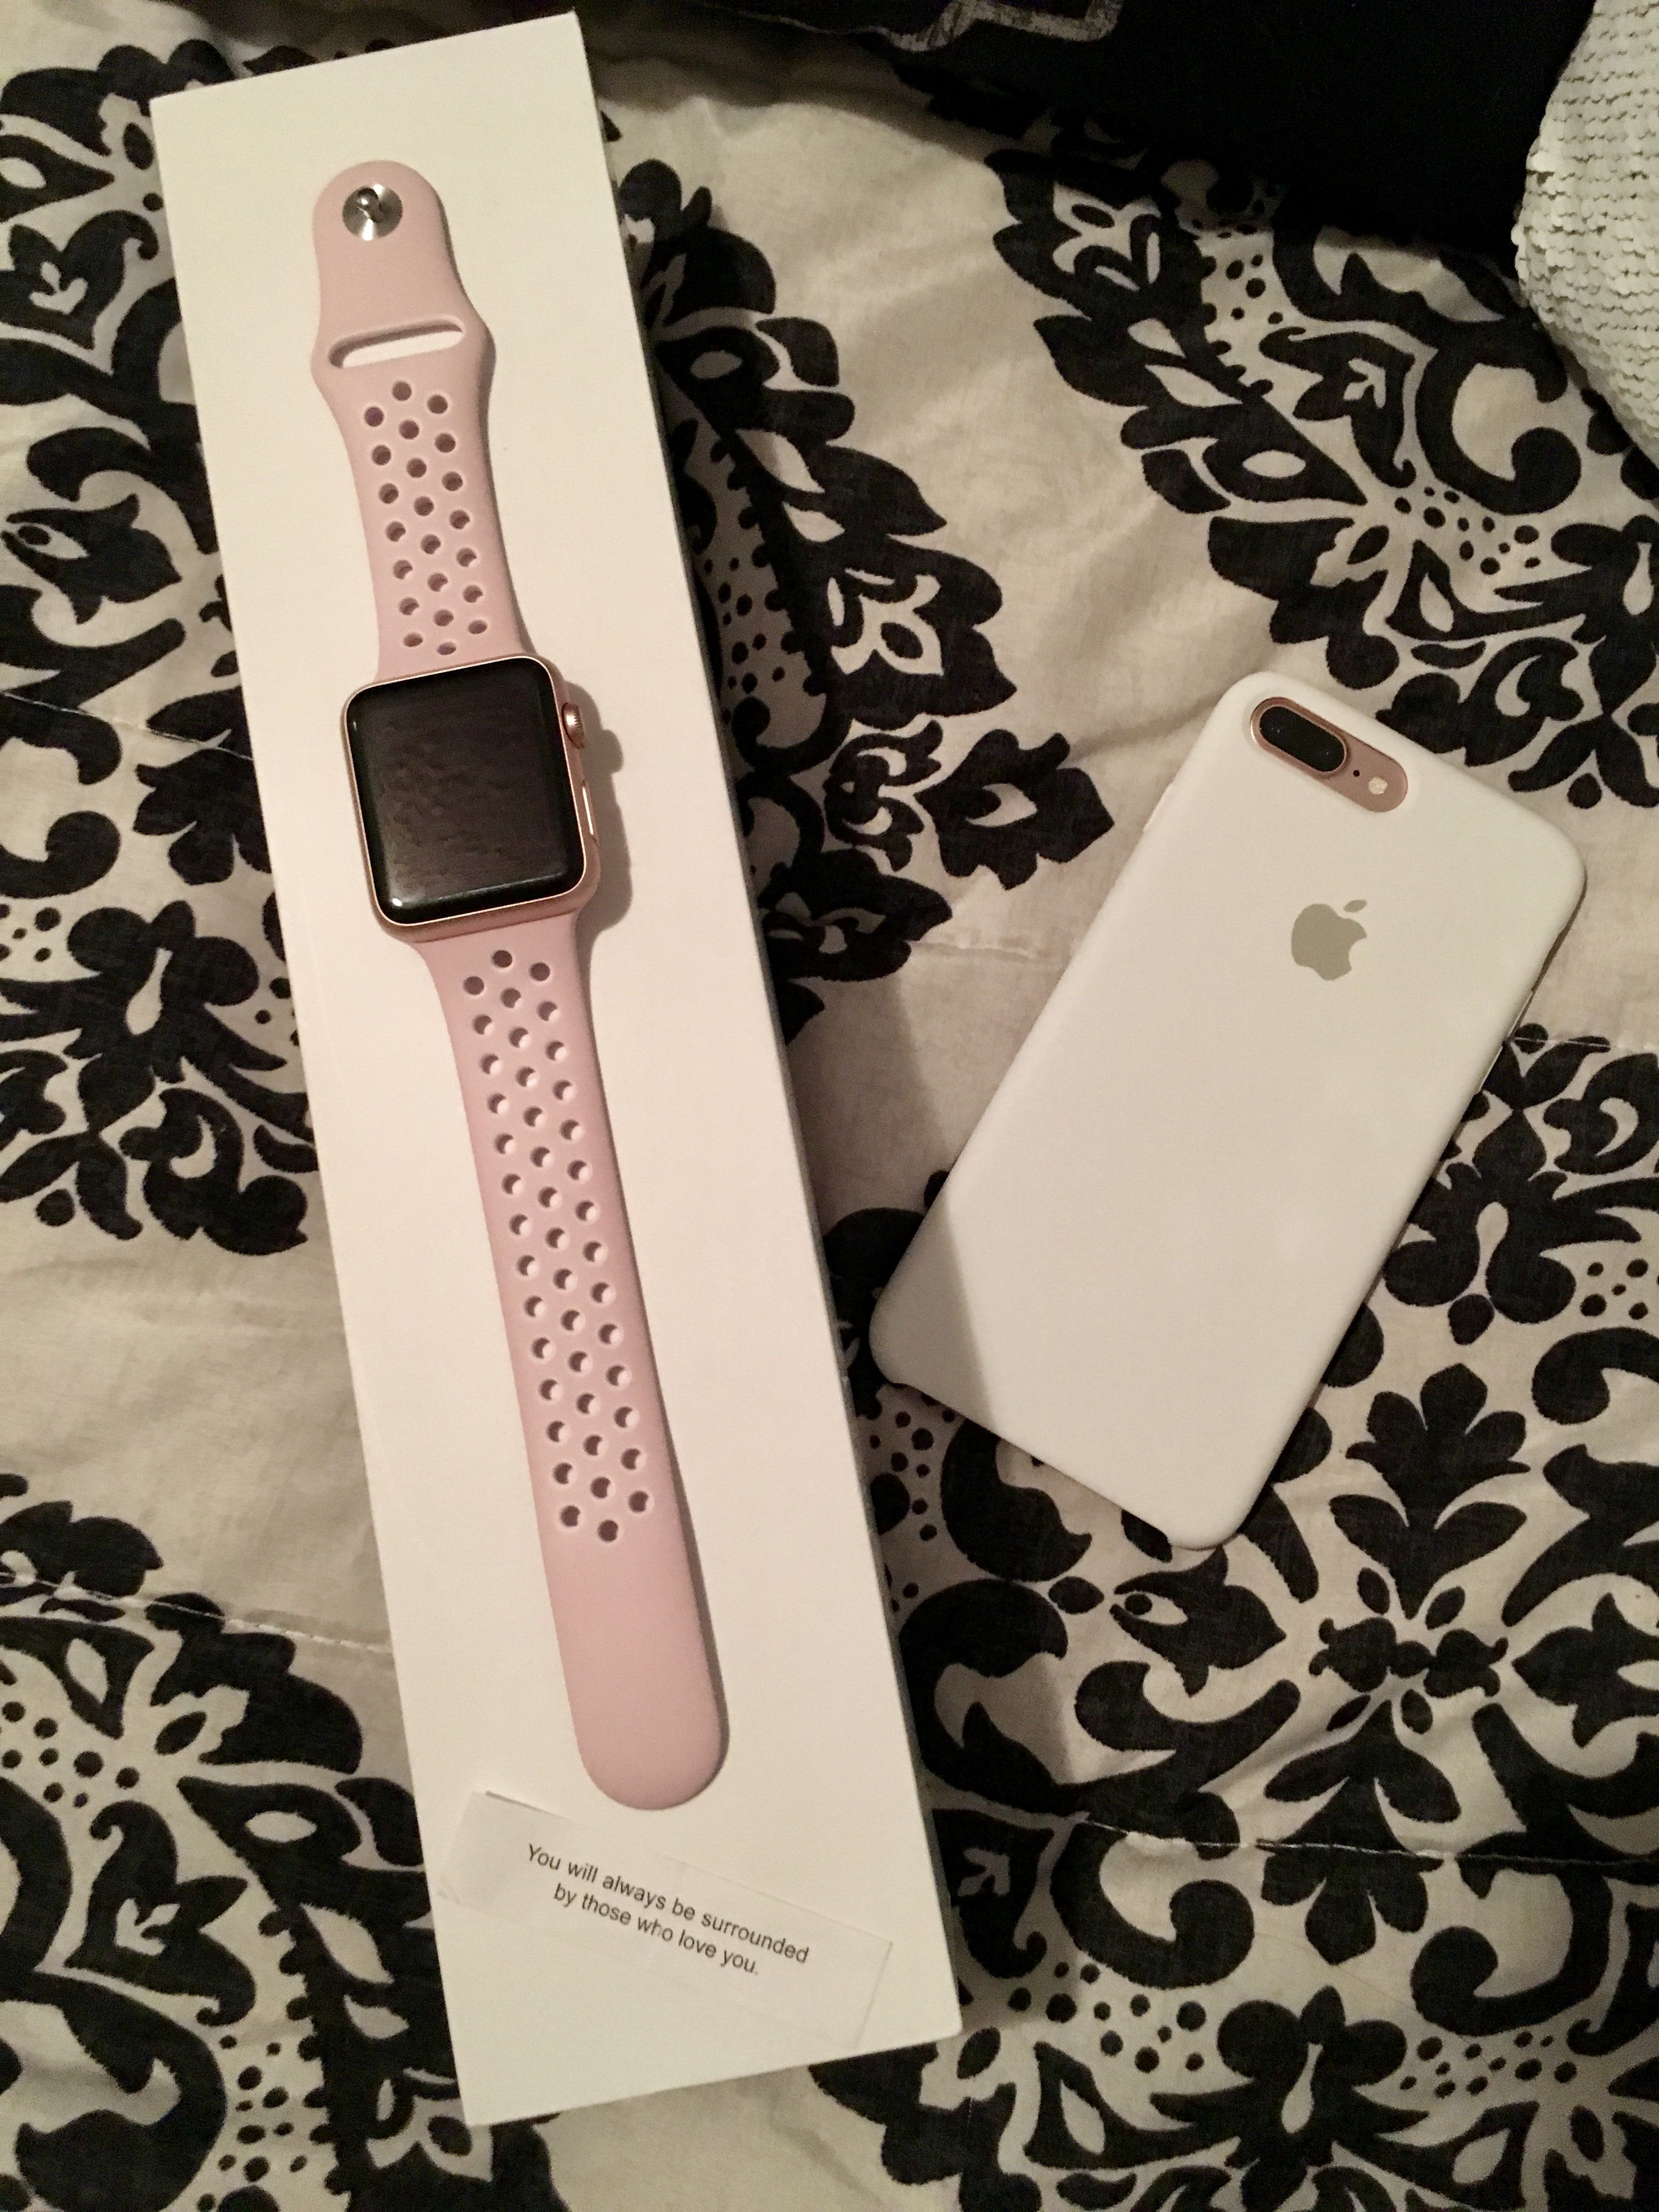 Apple Watch 42 Mm Rose Gold With Nike Sport Band In Barley Rose Pink Pearl Iphone 7 Plus In Apple Silicone Case Apple Watch Nike Nike Watch Apple Watch Bands